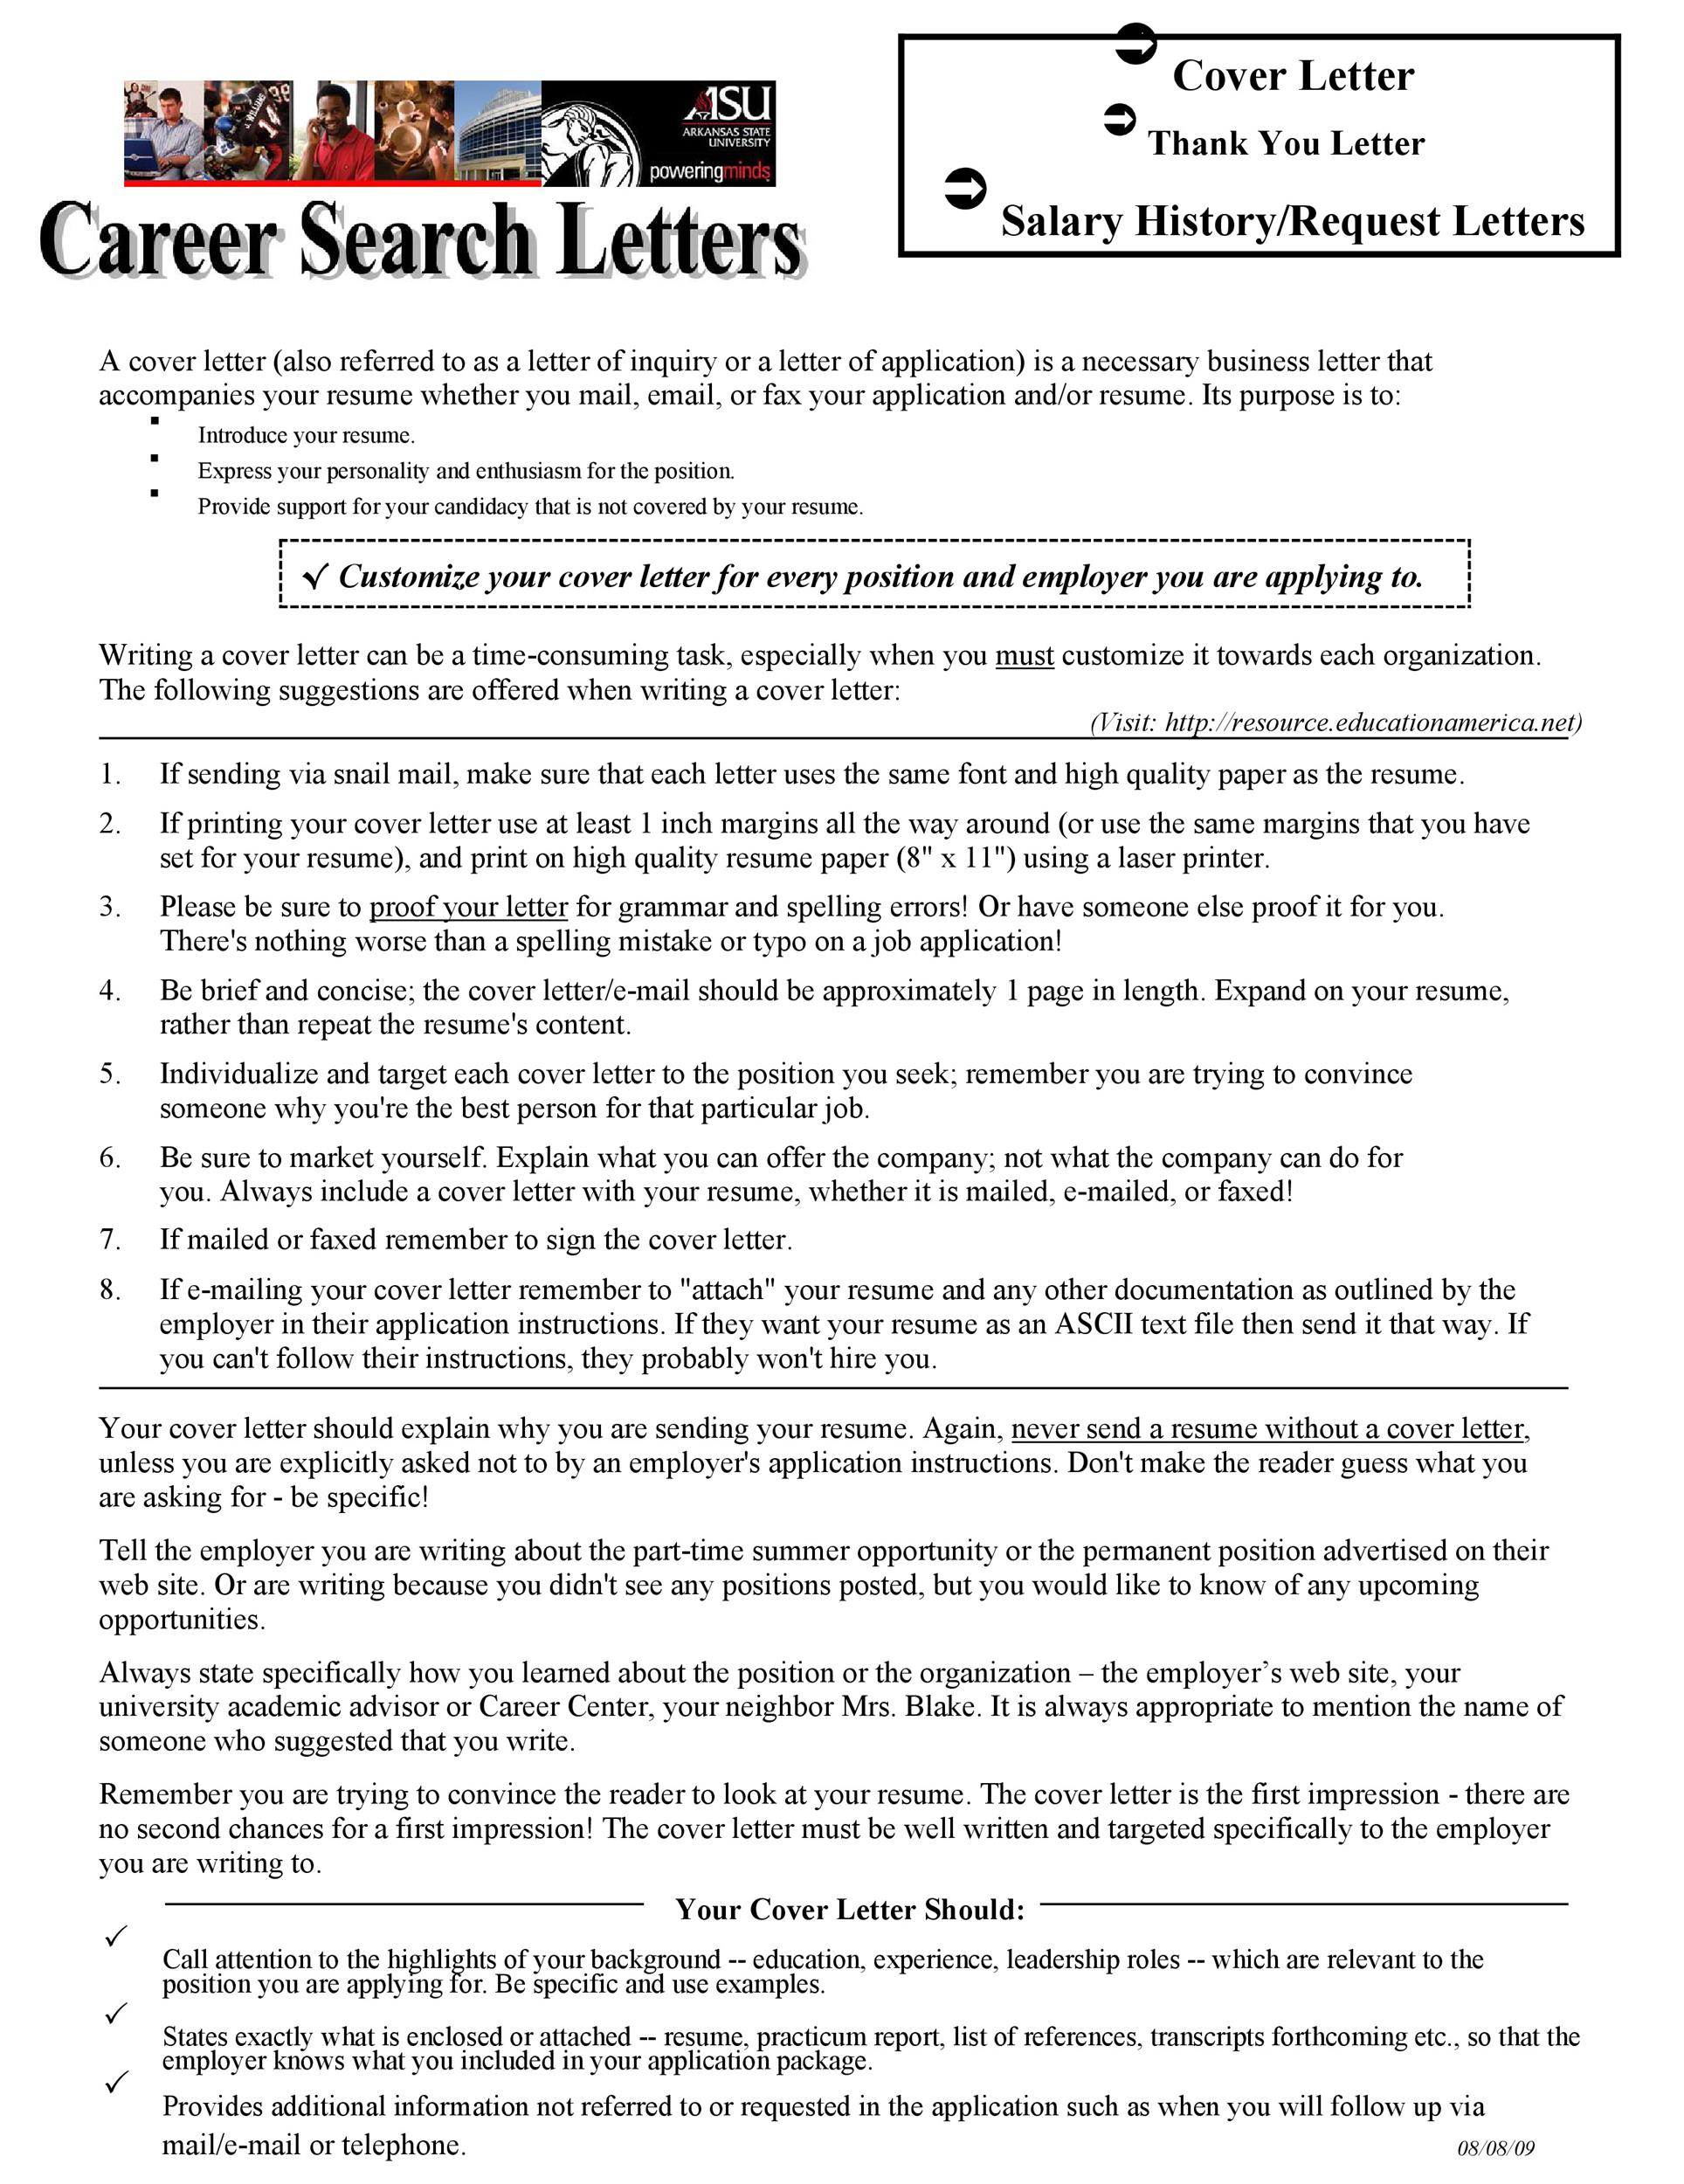 Free salary requirements cover letter 02